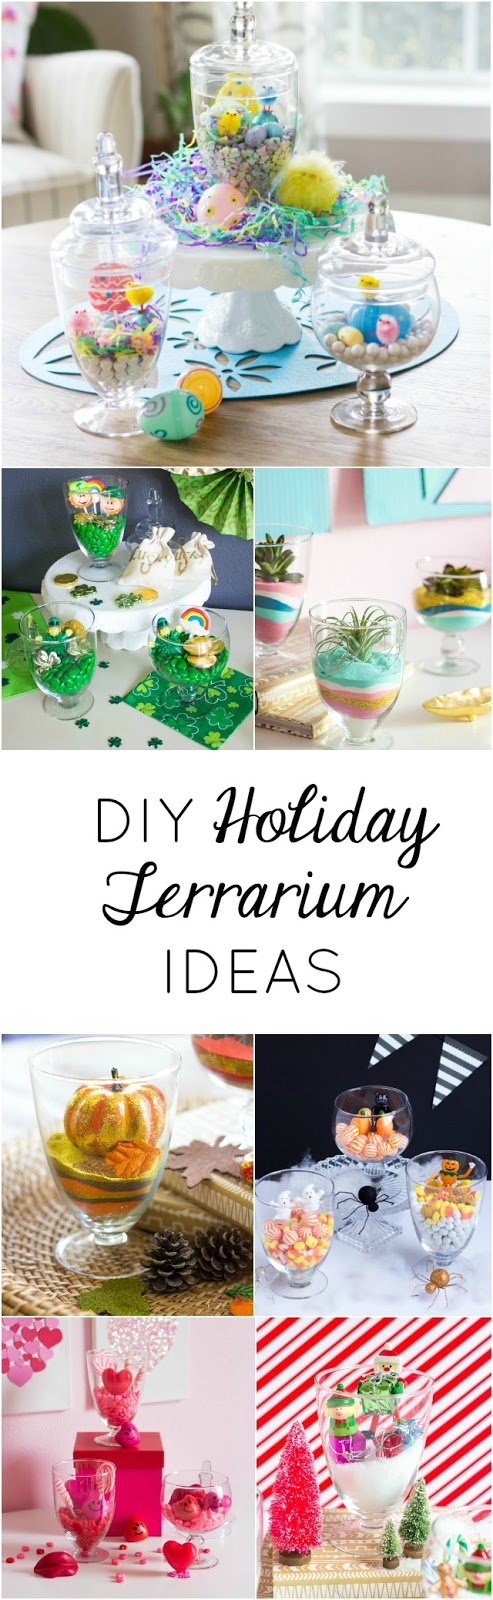 Create the sweetest holiday terrariums throughout the year using the same set of glass jars!